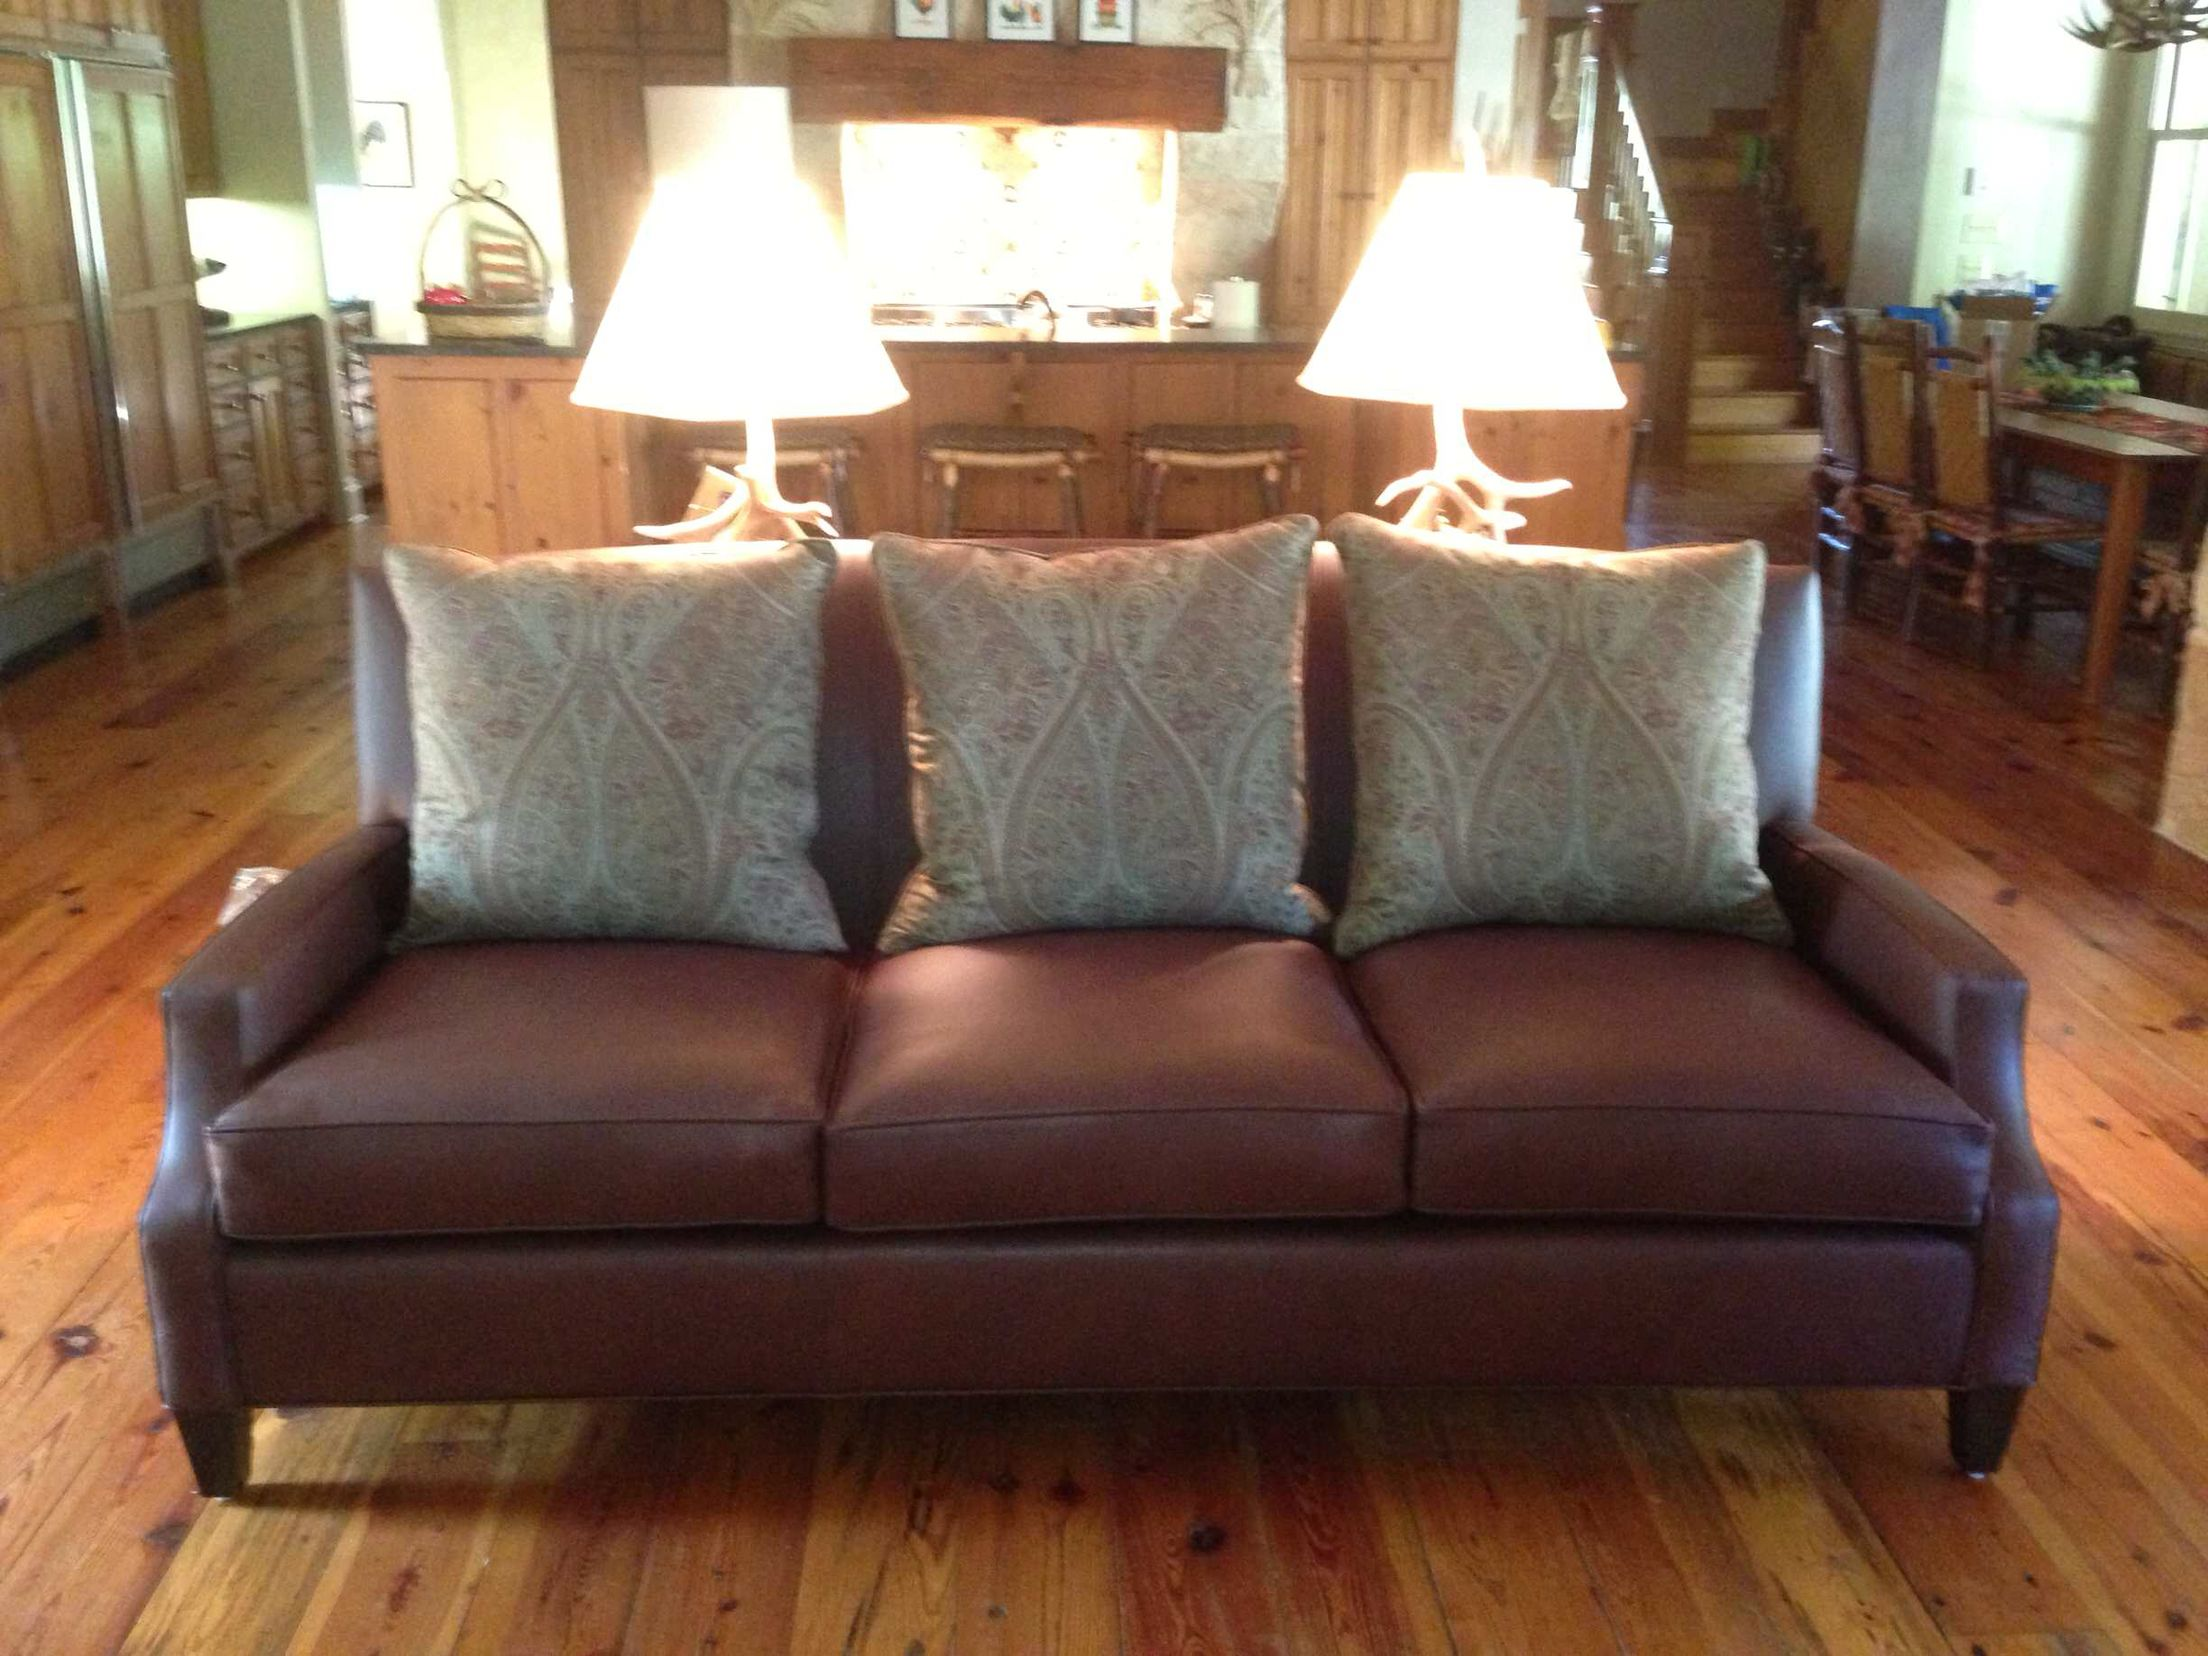 Custom made leather sofa with Ralph Lauren throw pillows